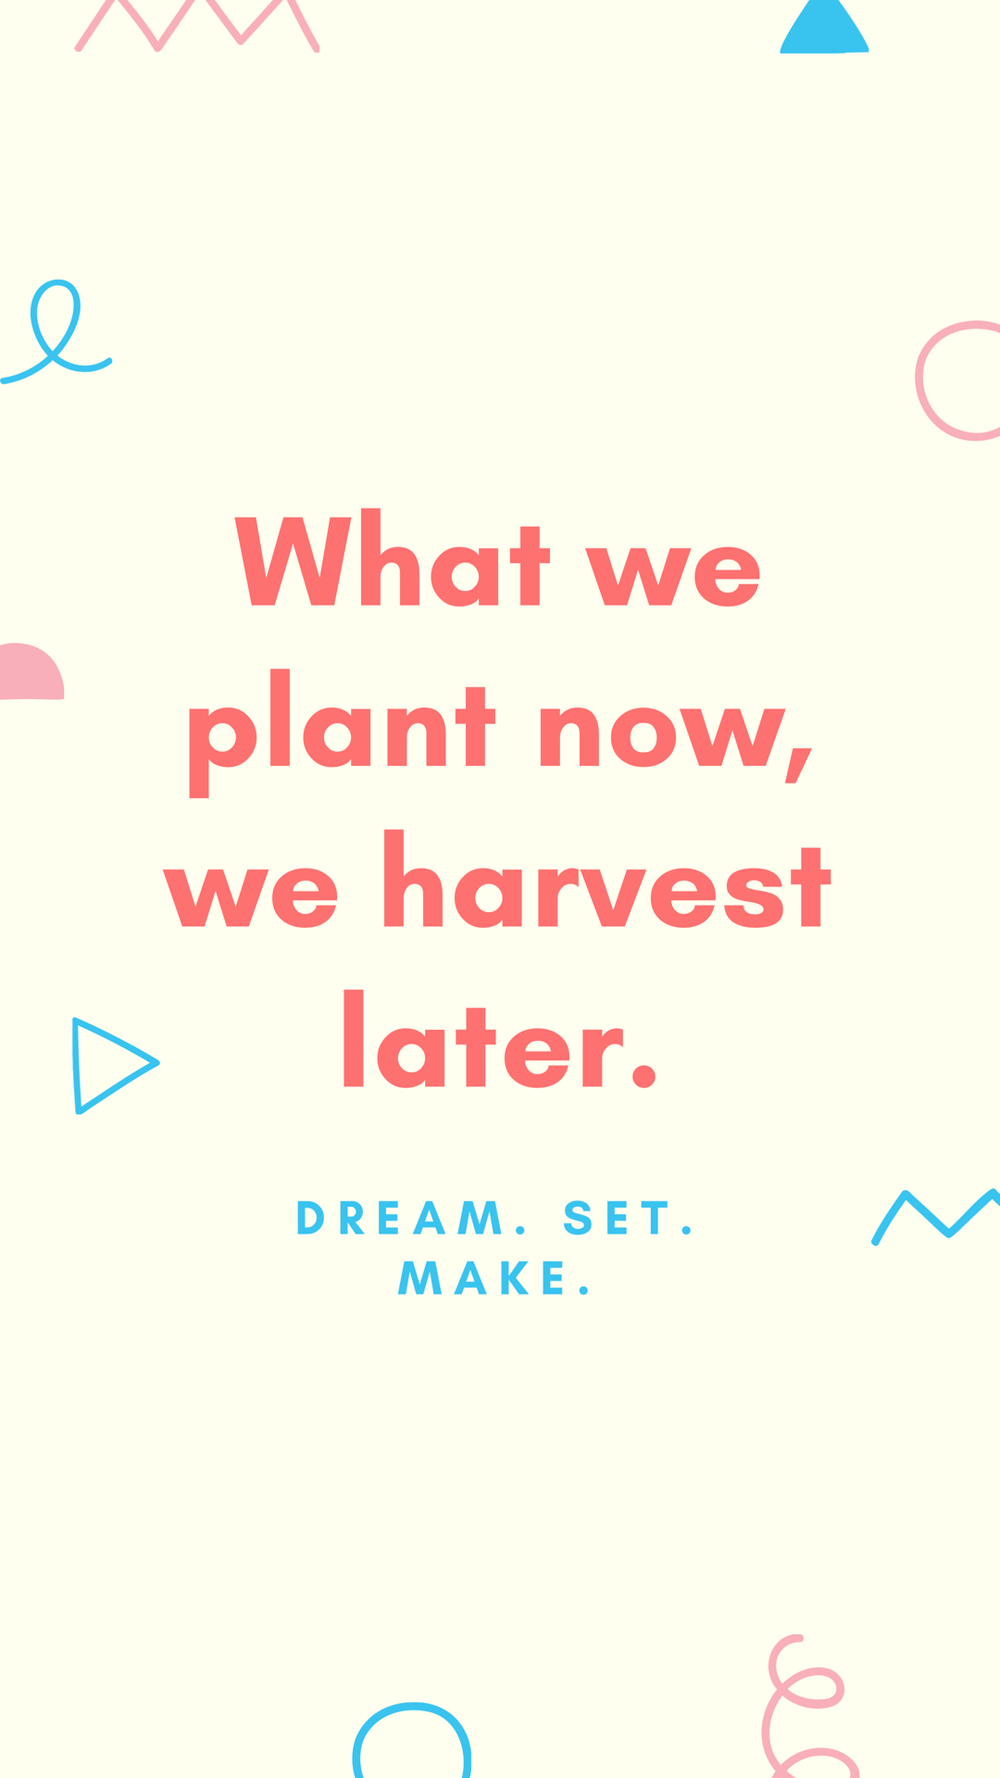 What we plant now.